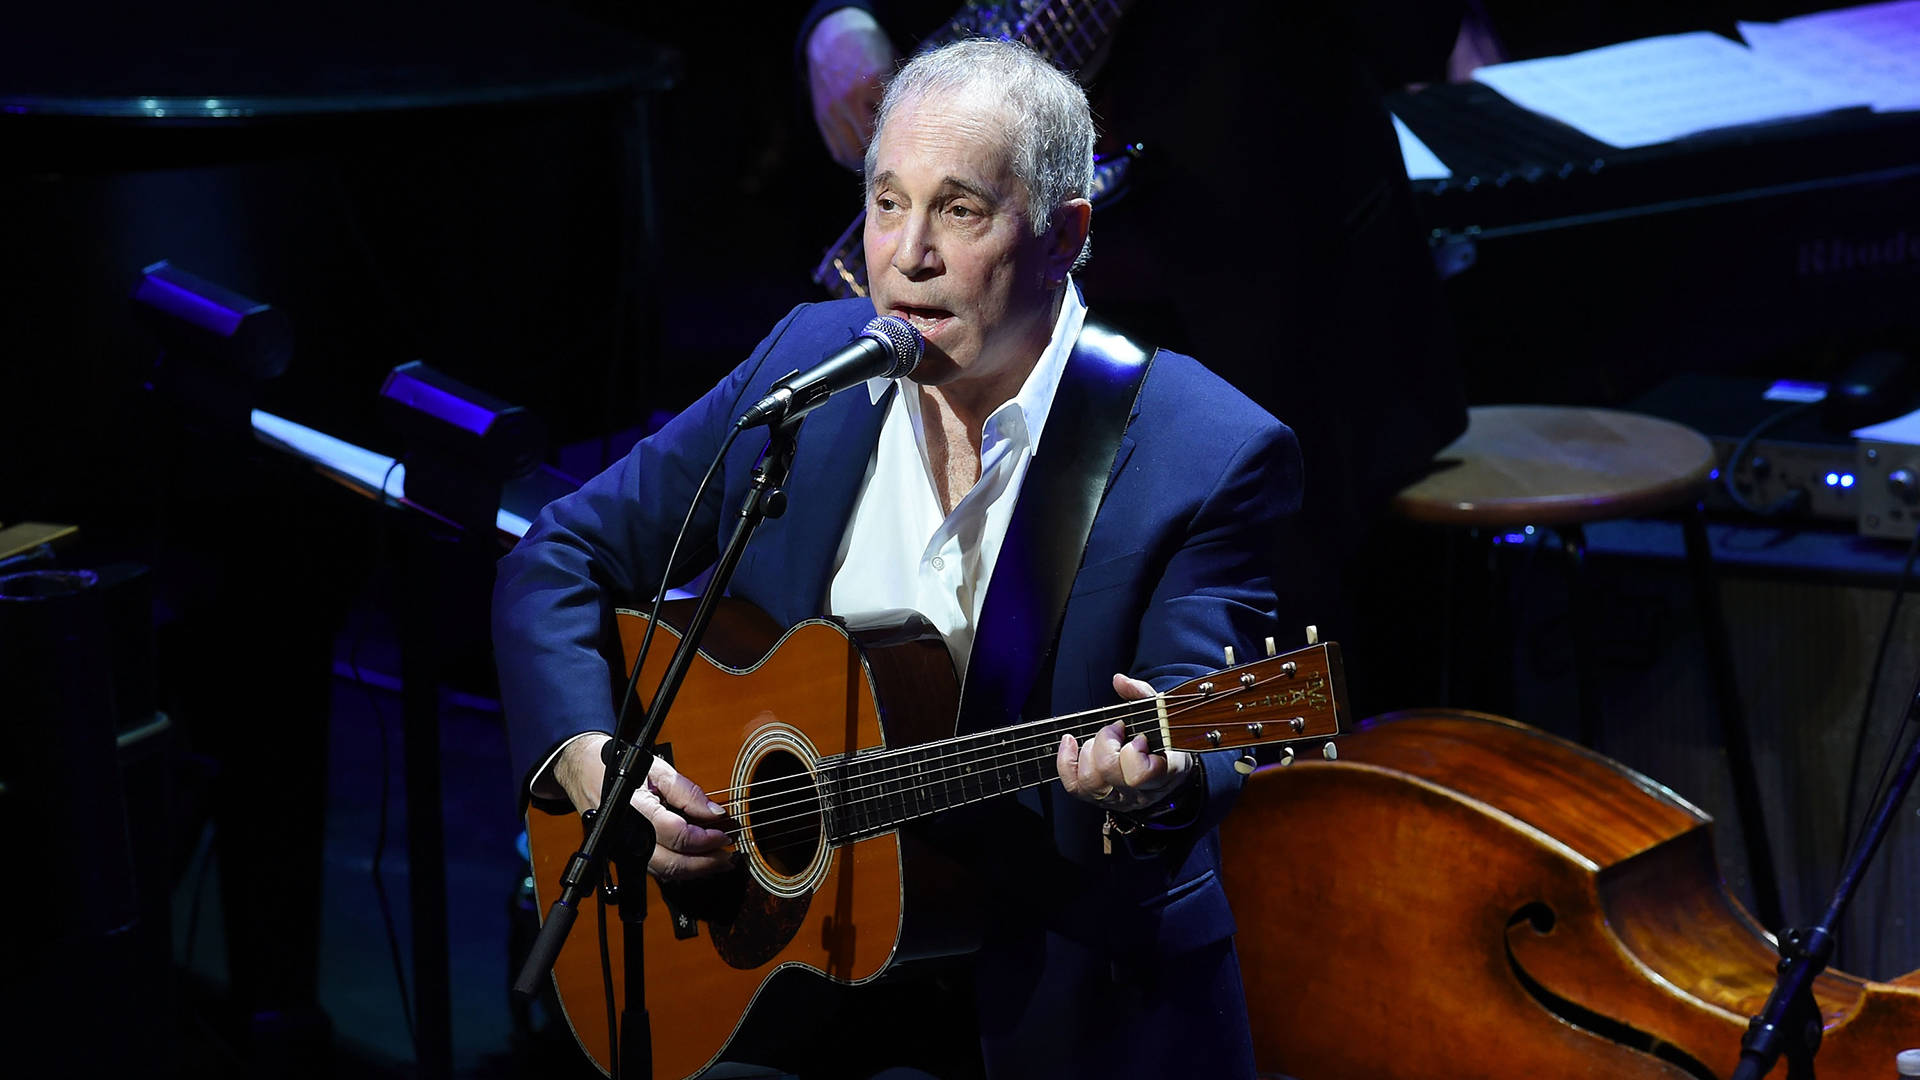 Paul Simon performs during The Nearness Of You Benefit Concert at Frederick P. Rose Hall, Jazz at Lincoln Center on January 20, 2015 in New York City.   Ilya S. Savenok/Getty Images